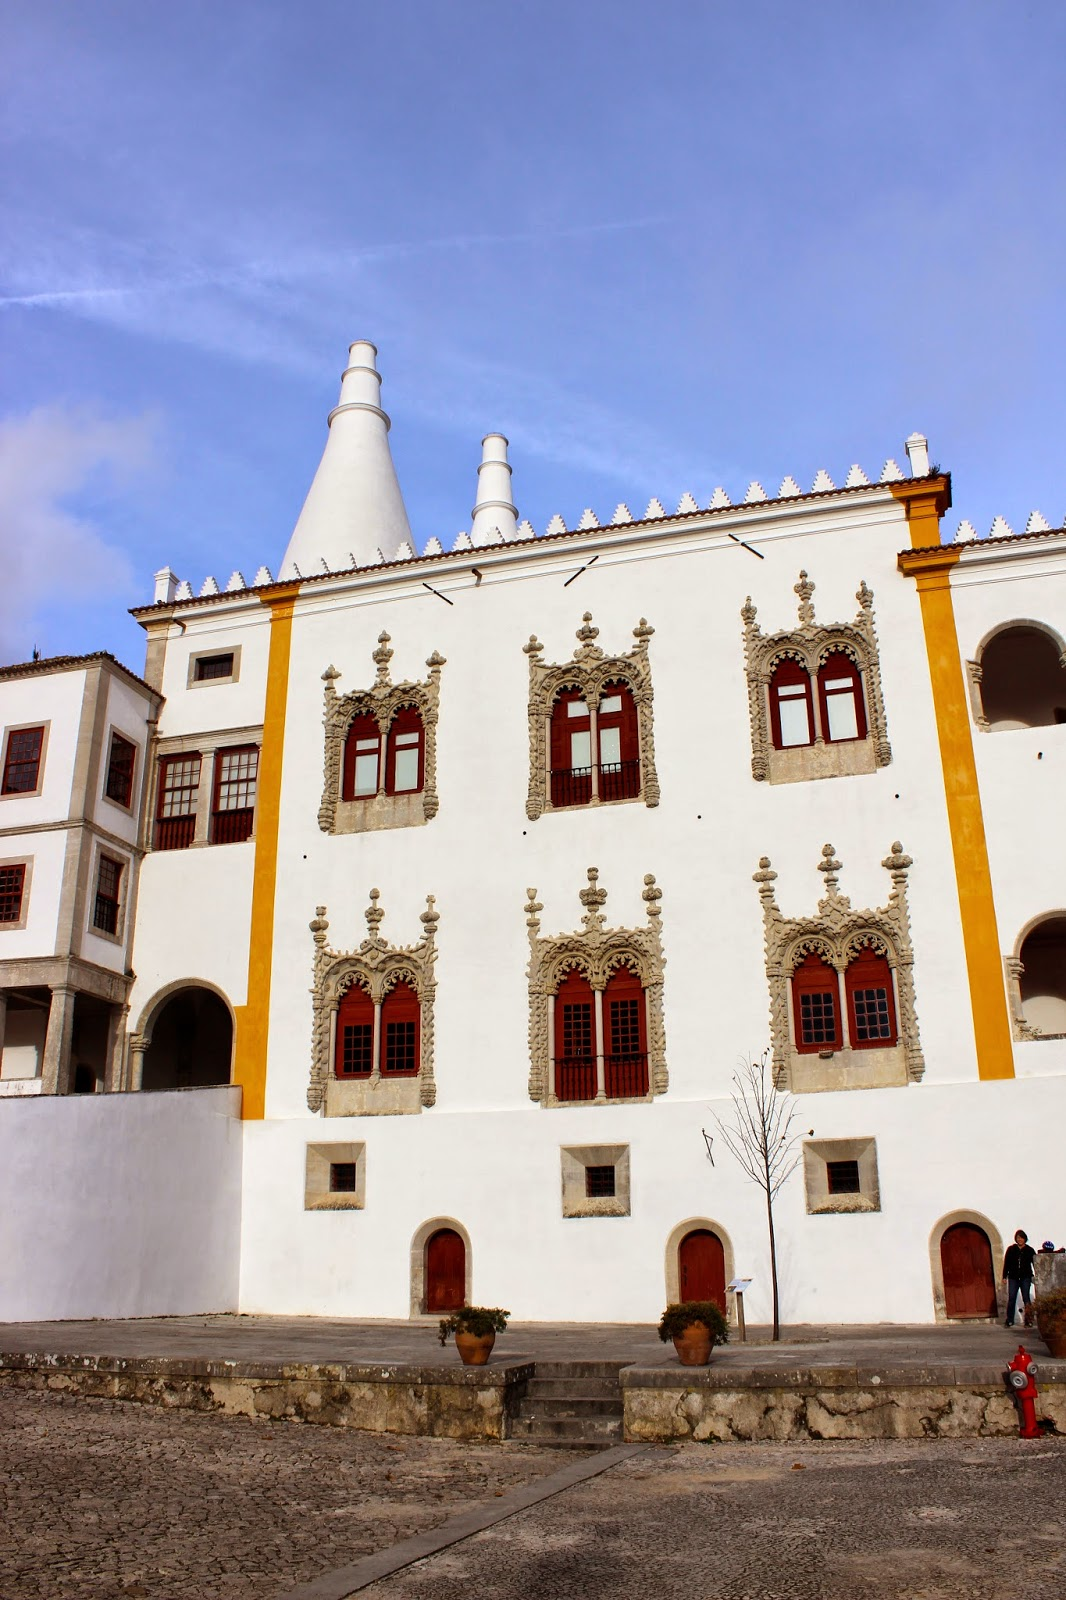 http://www.saucemagnusson.com/2015/03/the-portuguese-national-palace-in-sintra.html